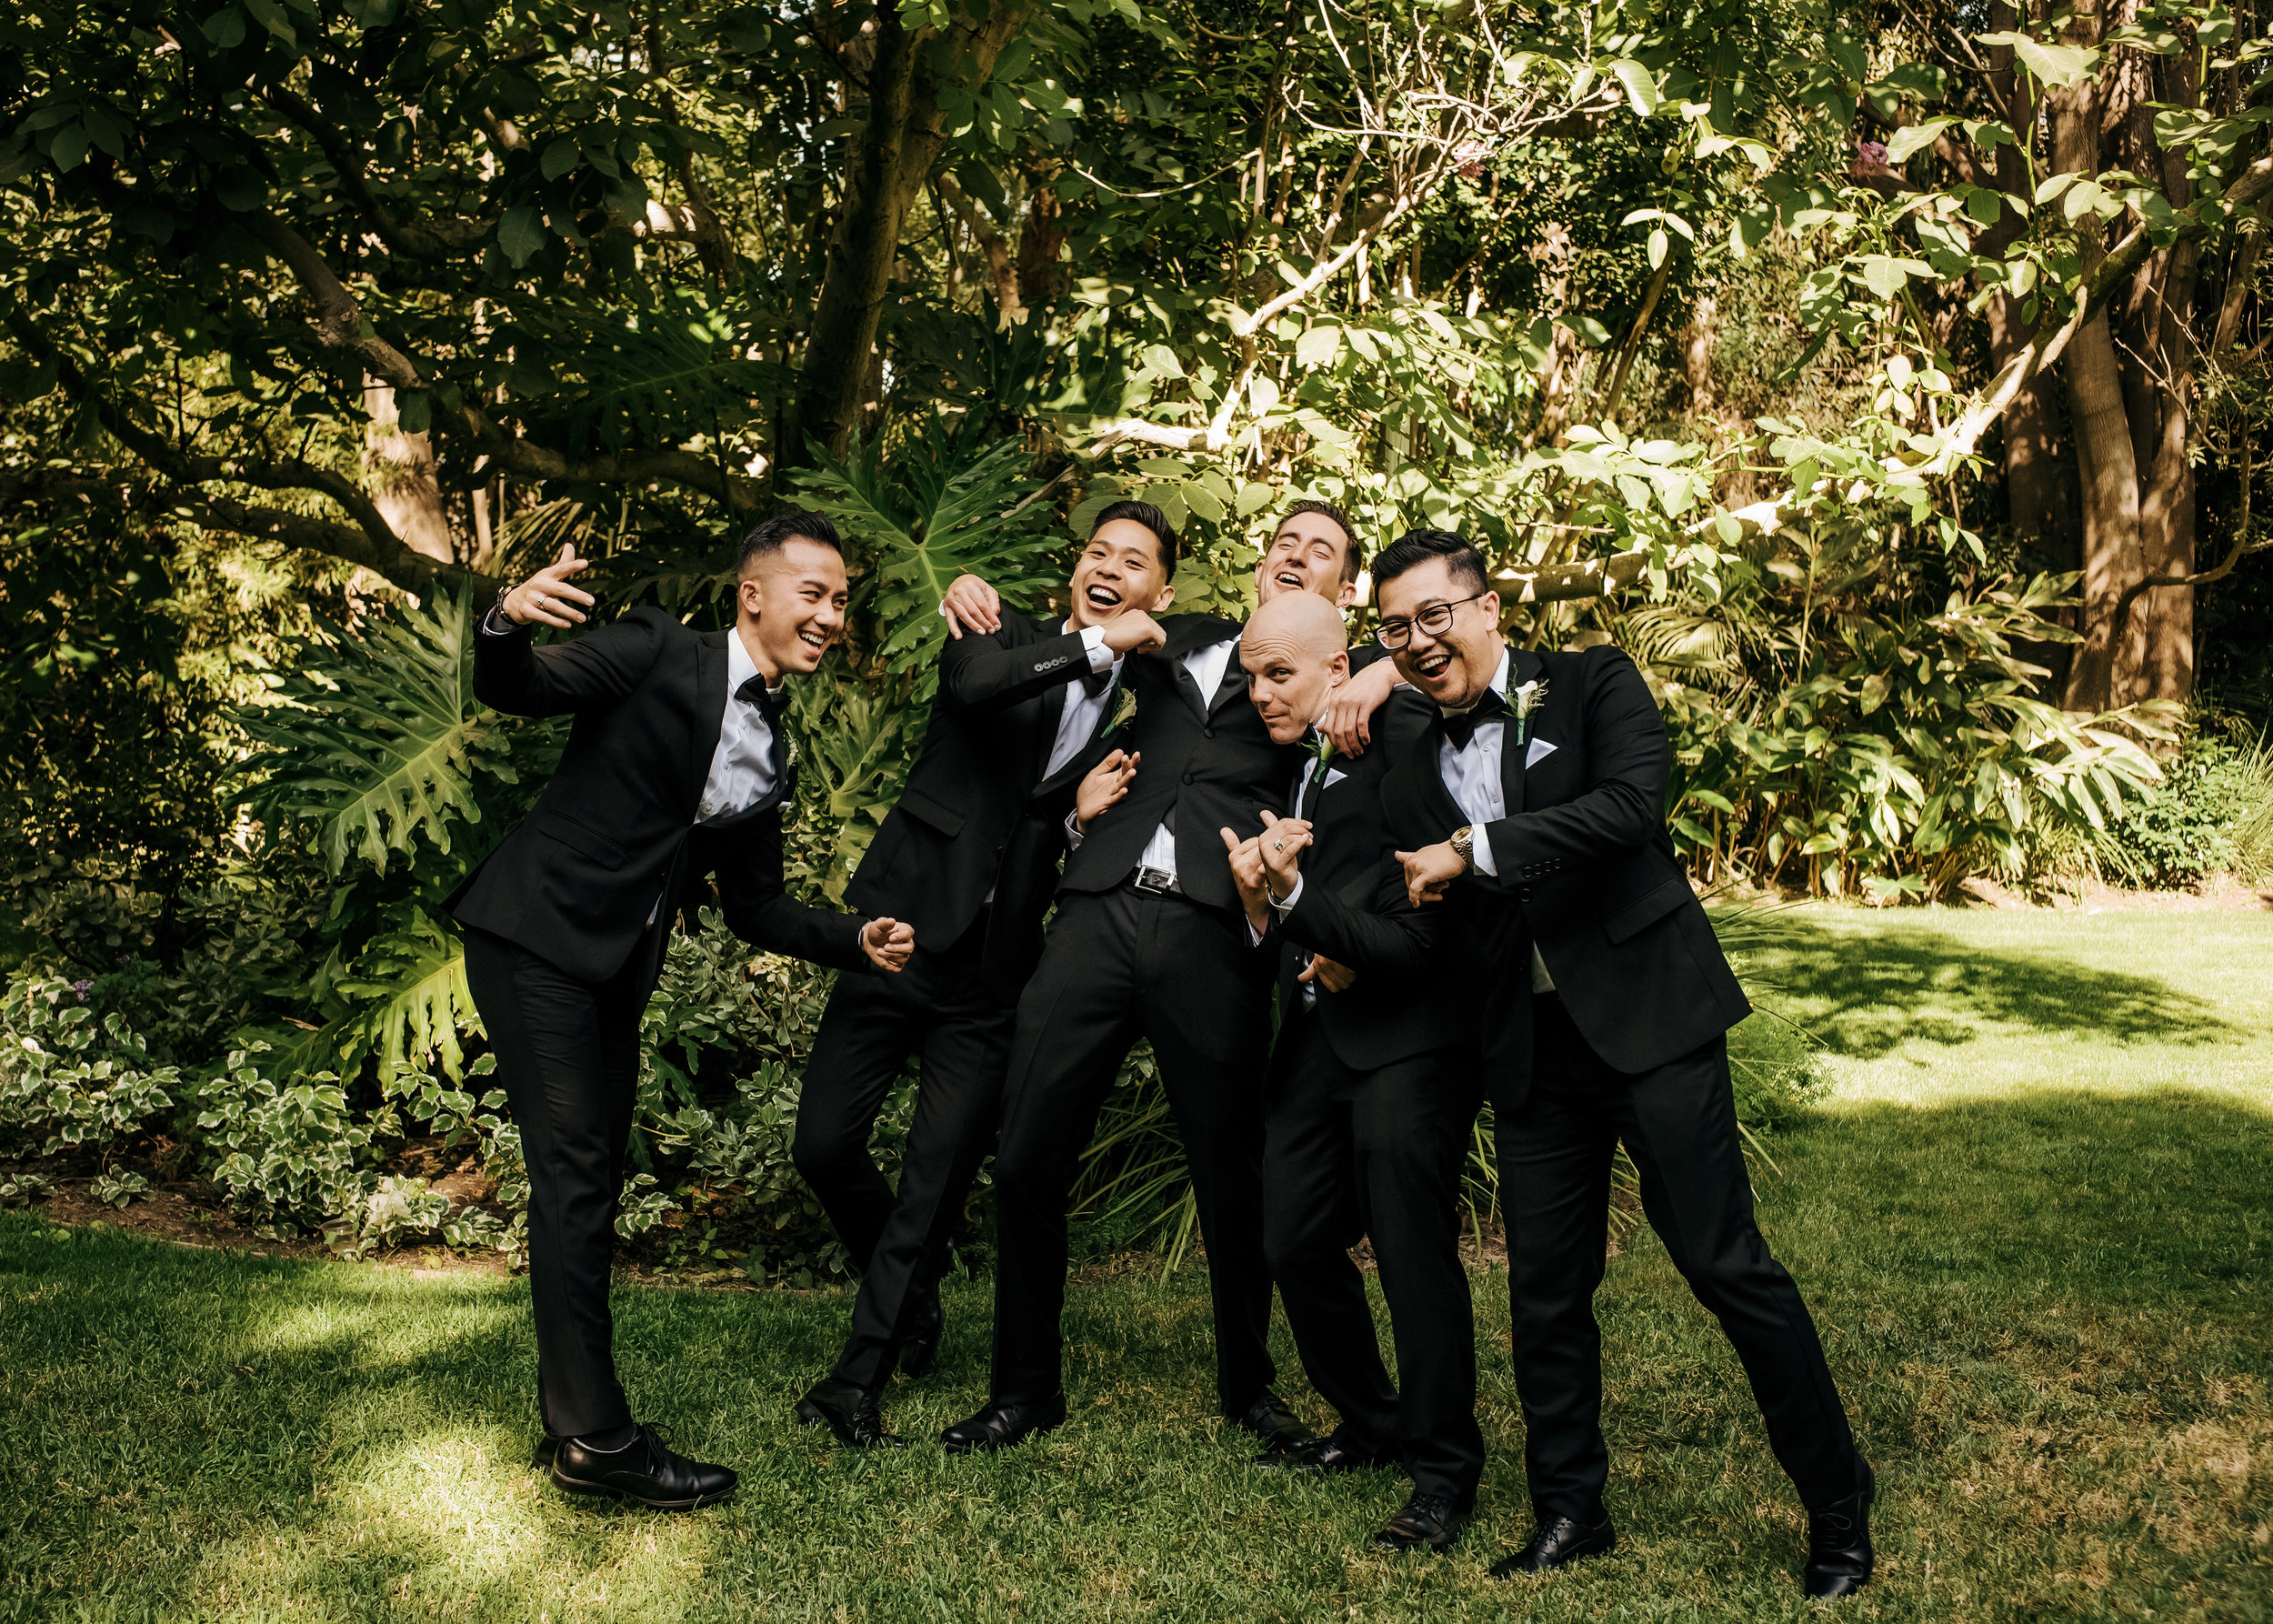 Turchin_20180825_Austinae-Brent-Wedding_162.jpg